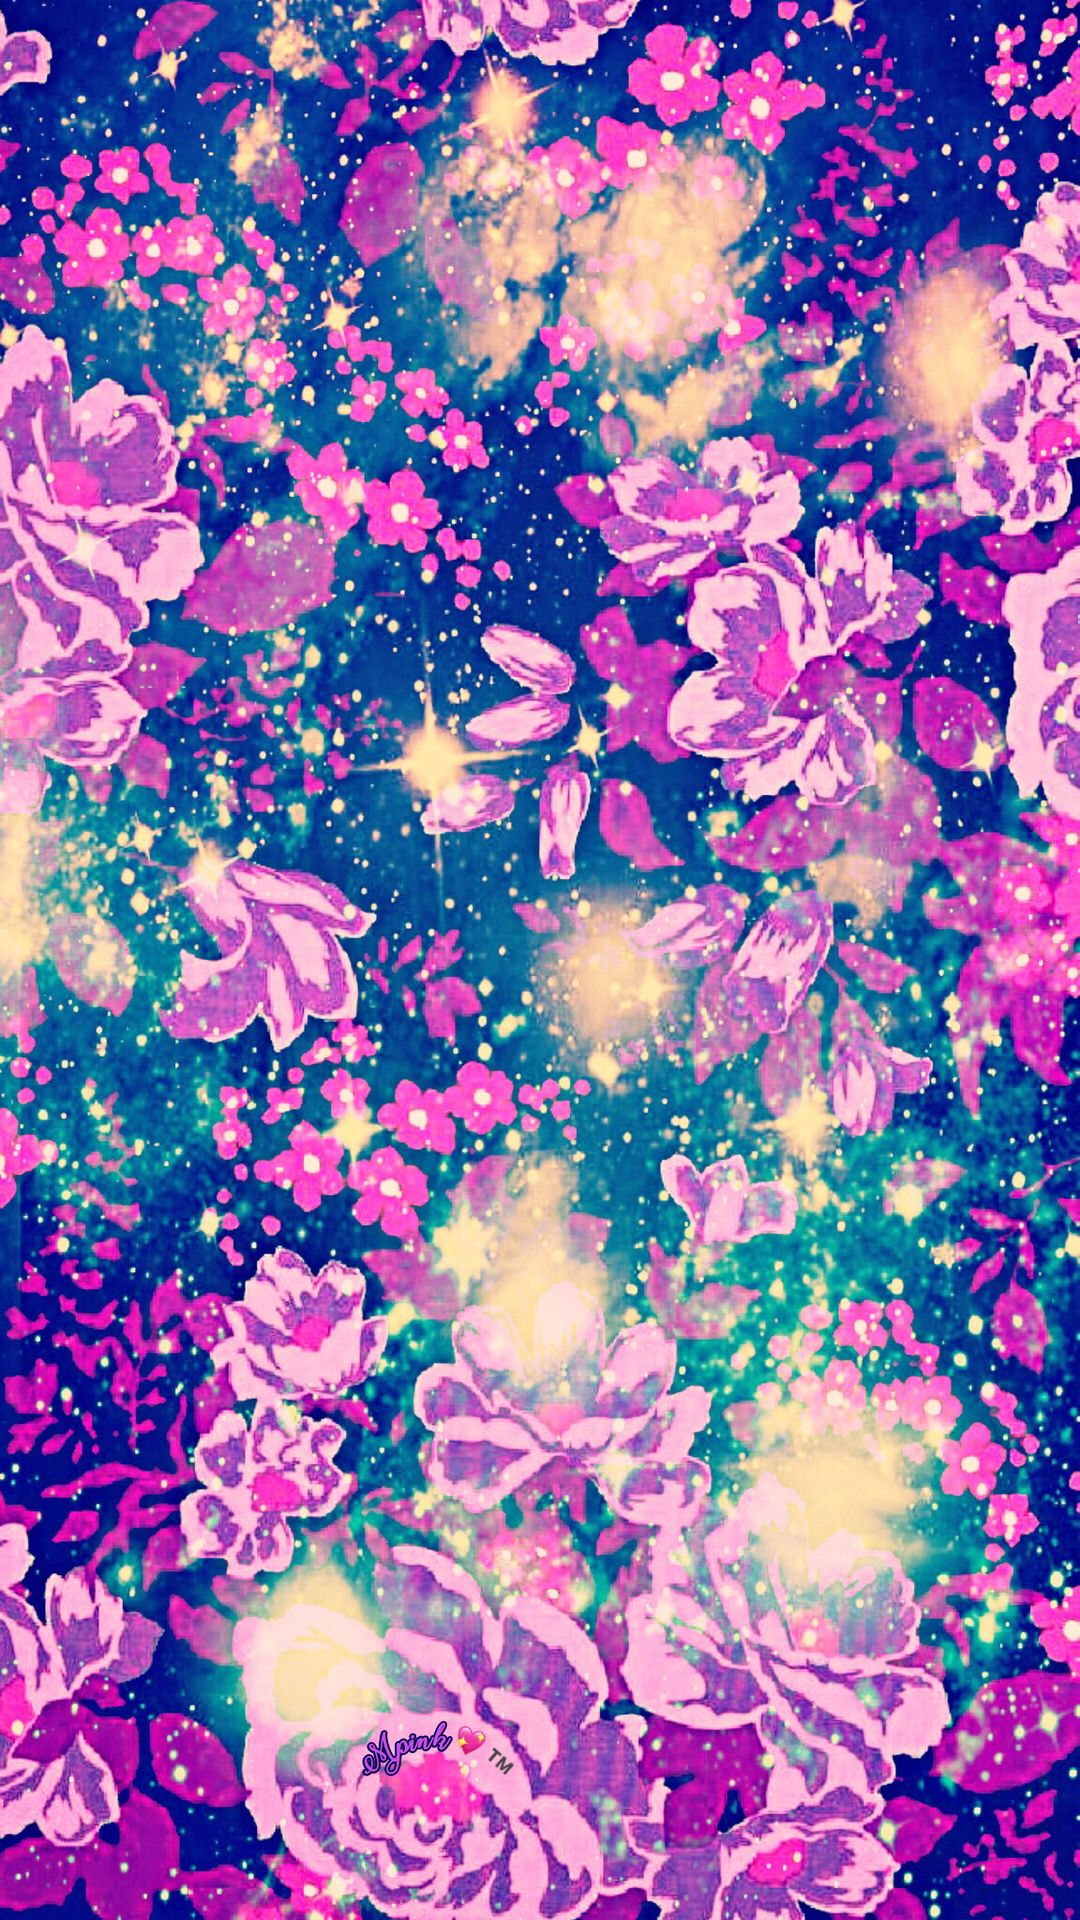 Mystical Flowers Galaxy Wallpaper Androidwallpaper